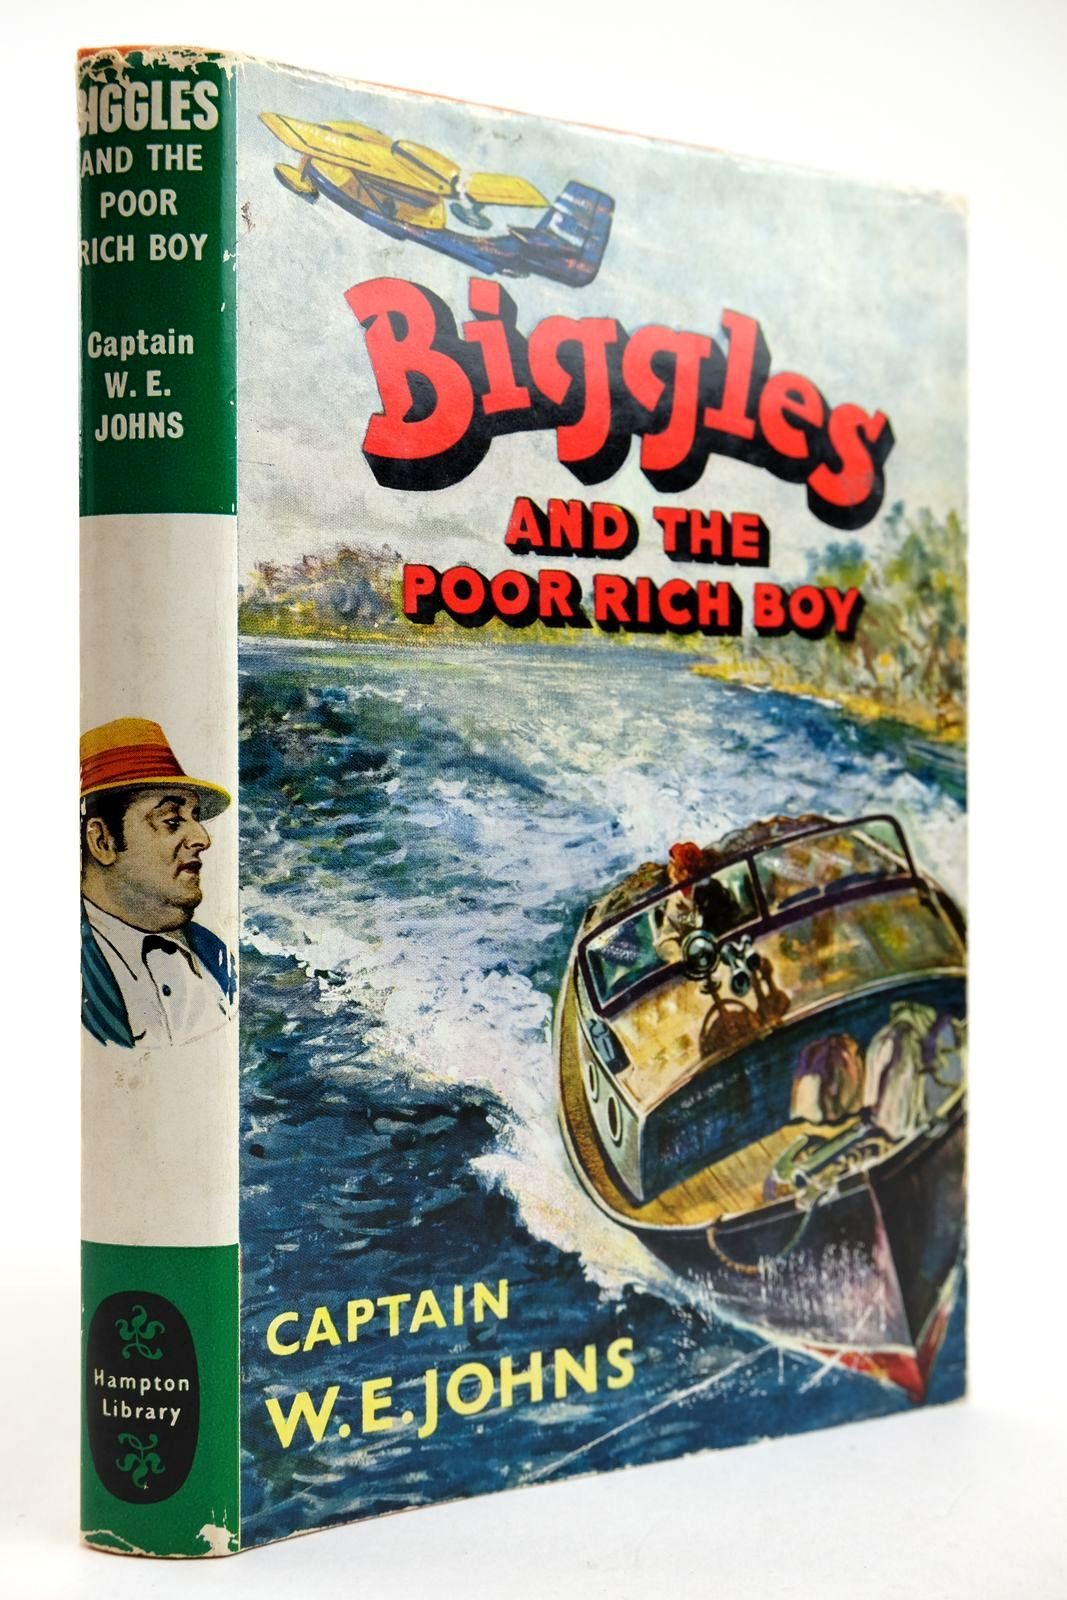 Photo of BIGGLES AND THE POOR RICH BOY written by Johns, W.E. illustrated by Stead, Leslie published by Brockhampton Press Ltd. (STOCK CODE: 2132495)  for sale by Stella & Rose's Books